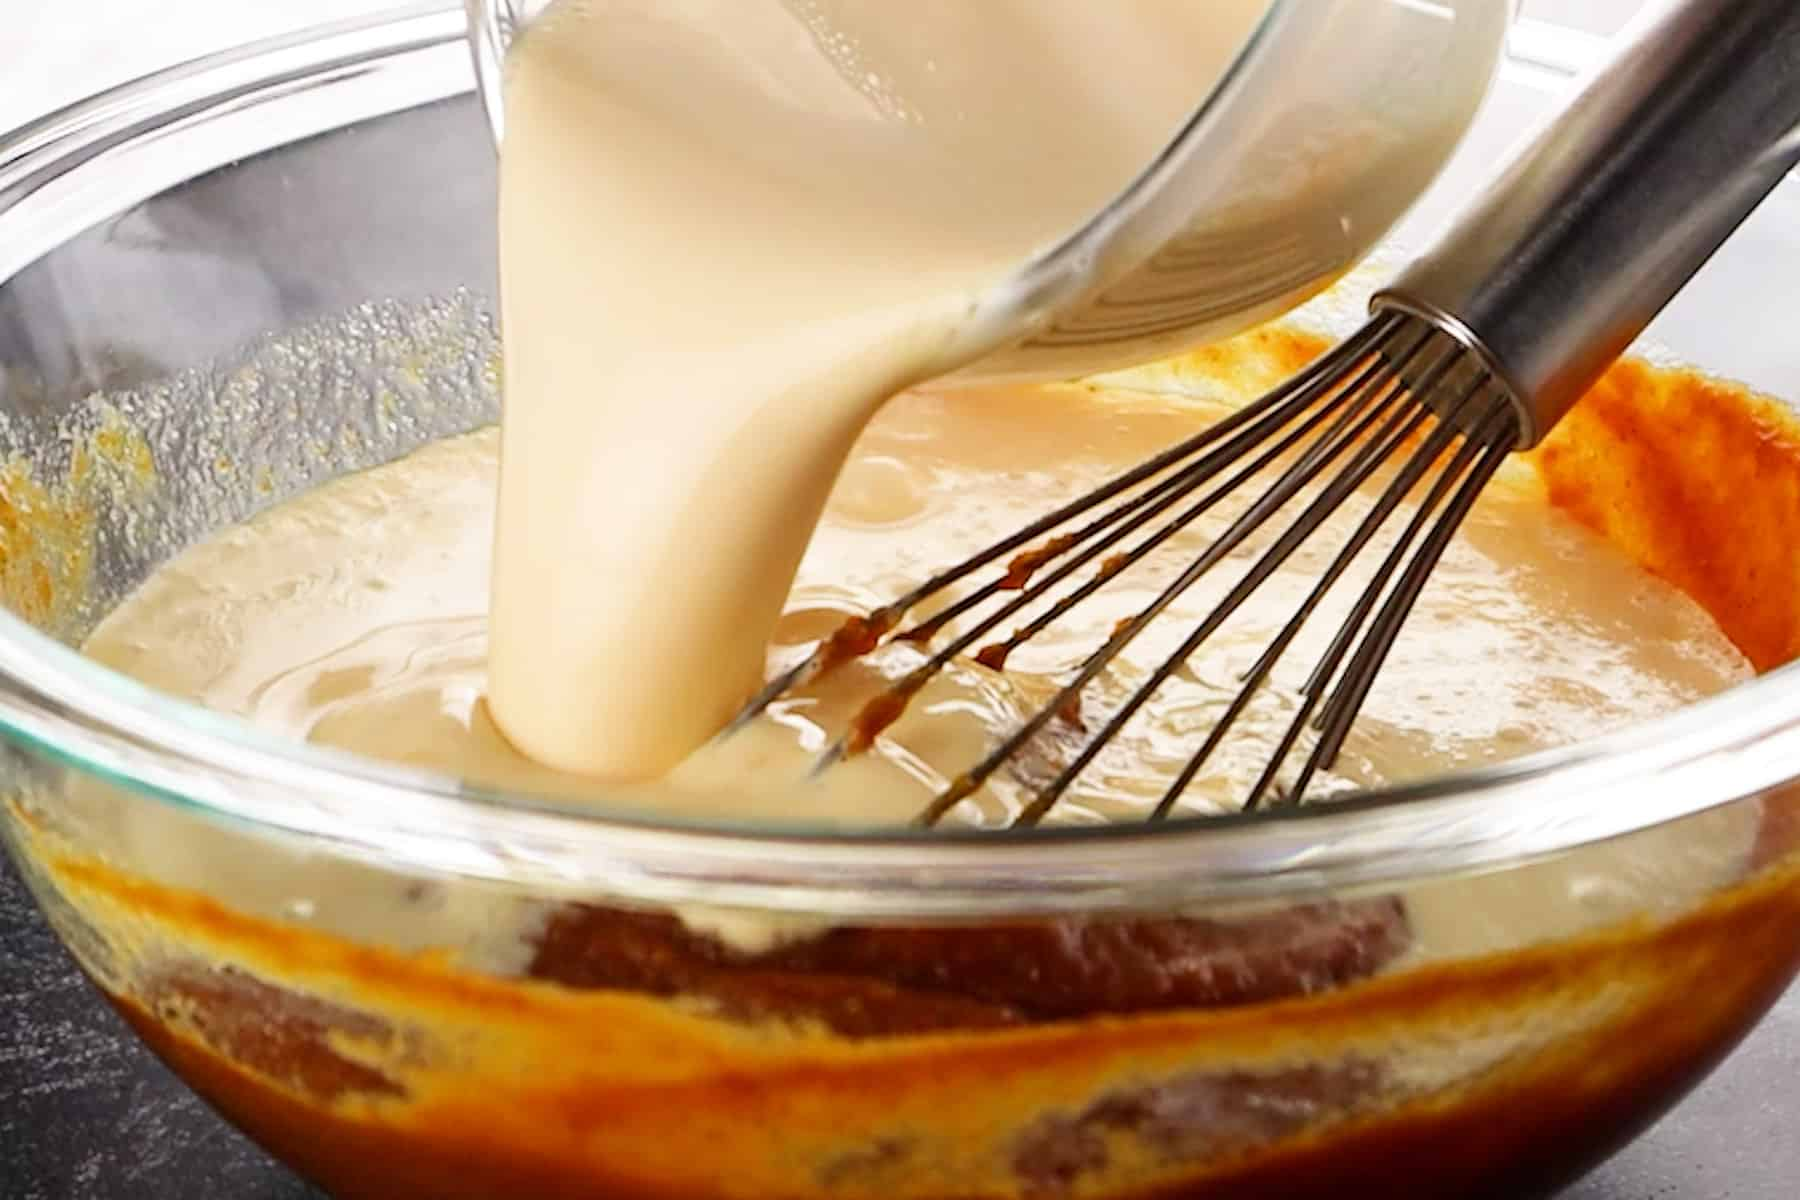 pouring into evaporated milk